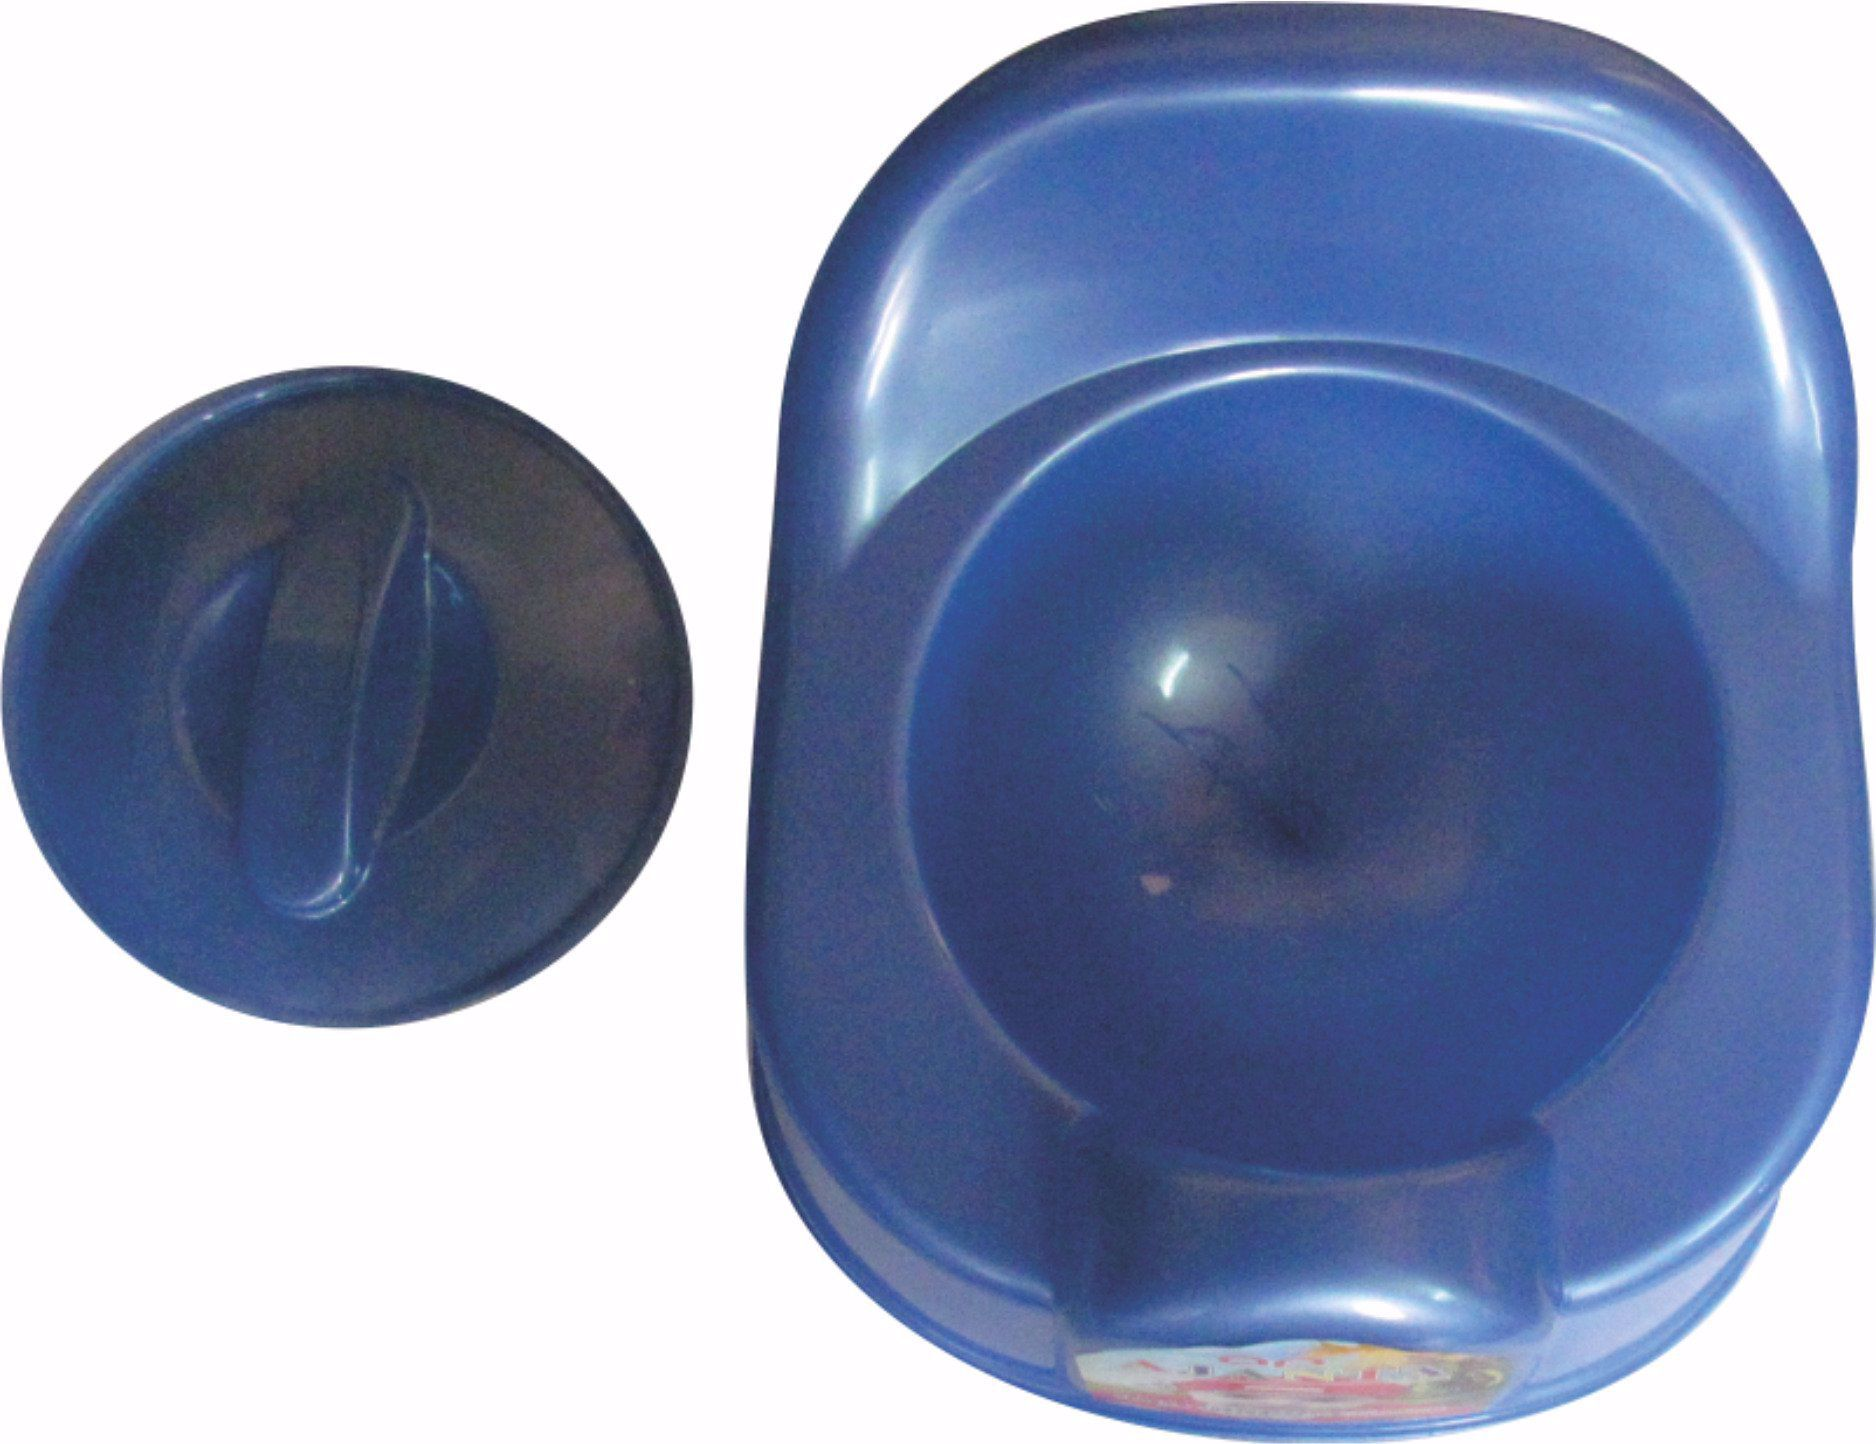 Baby Potty Seat Round blue, baby chair potty seat online